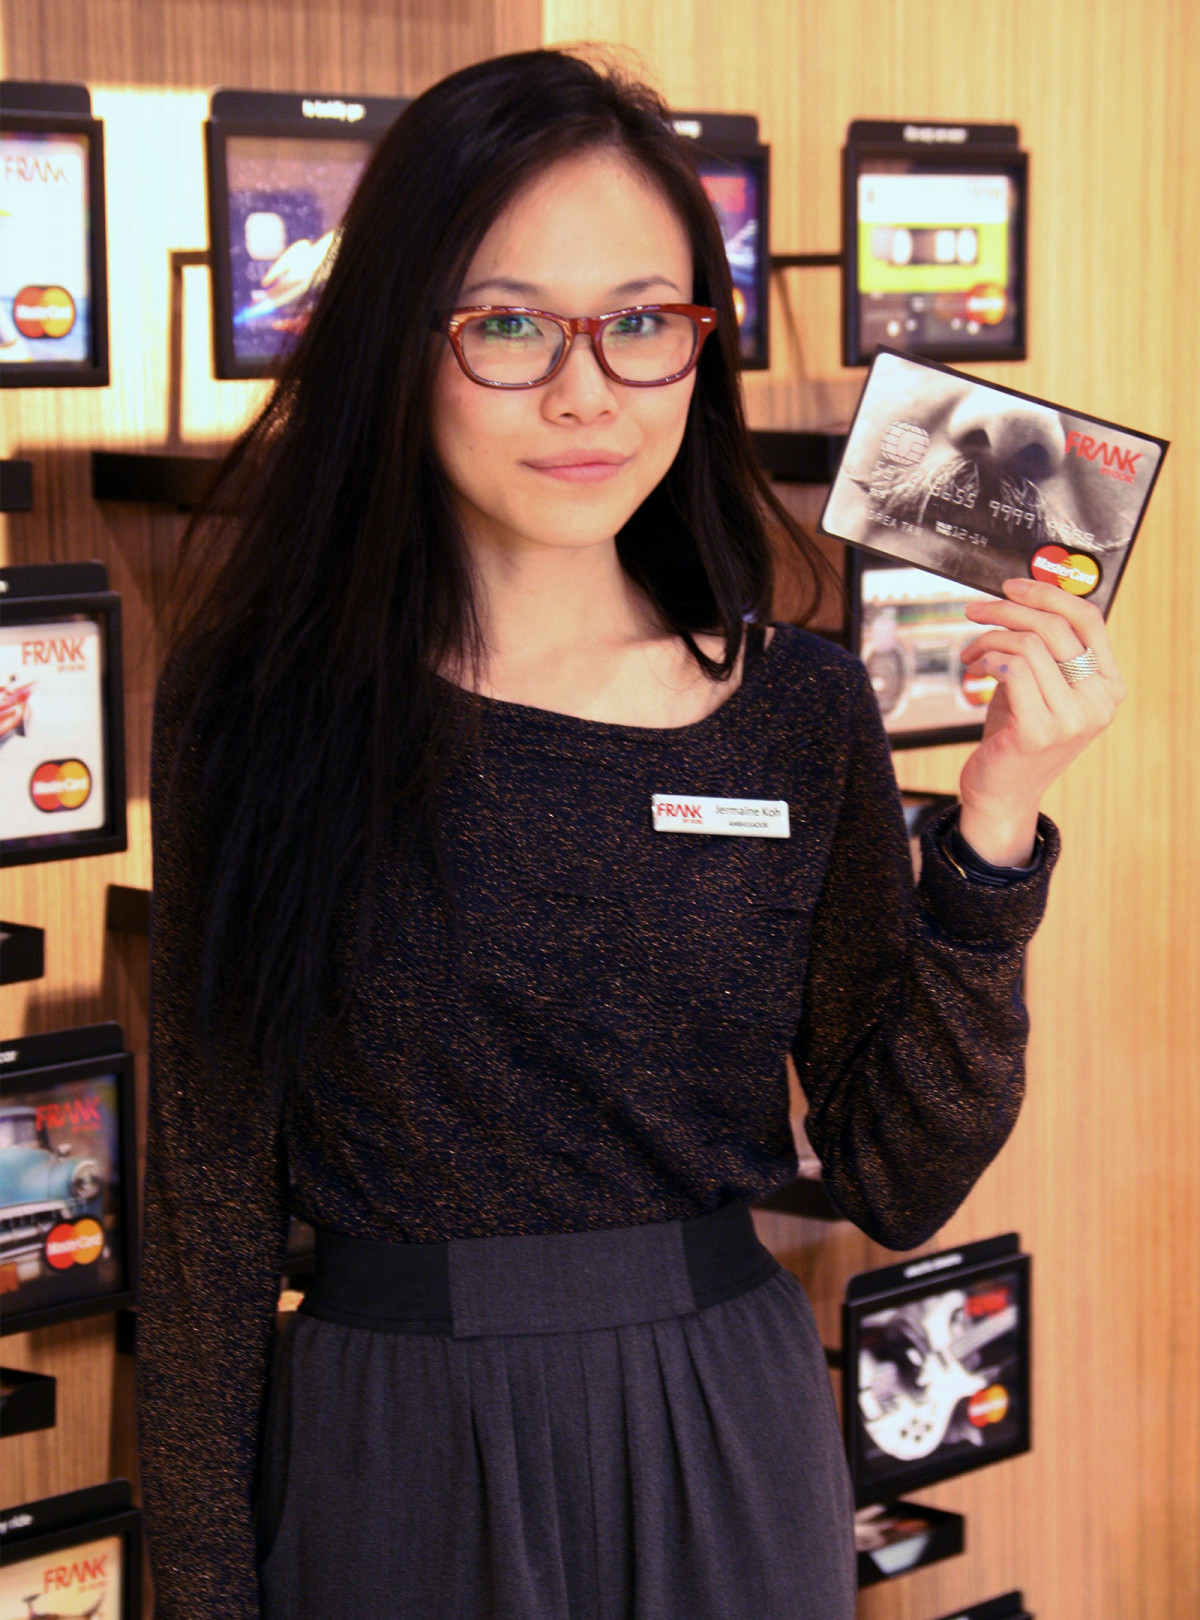 A woman poses with a FRANK by OCBC card design at the brand's launch event